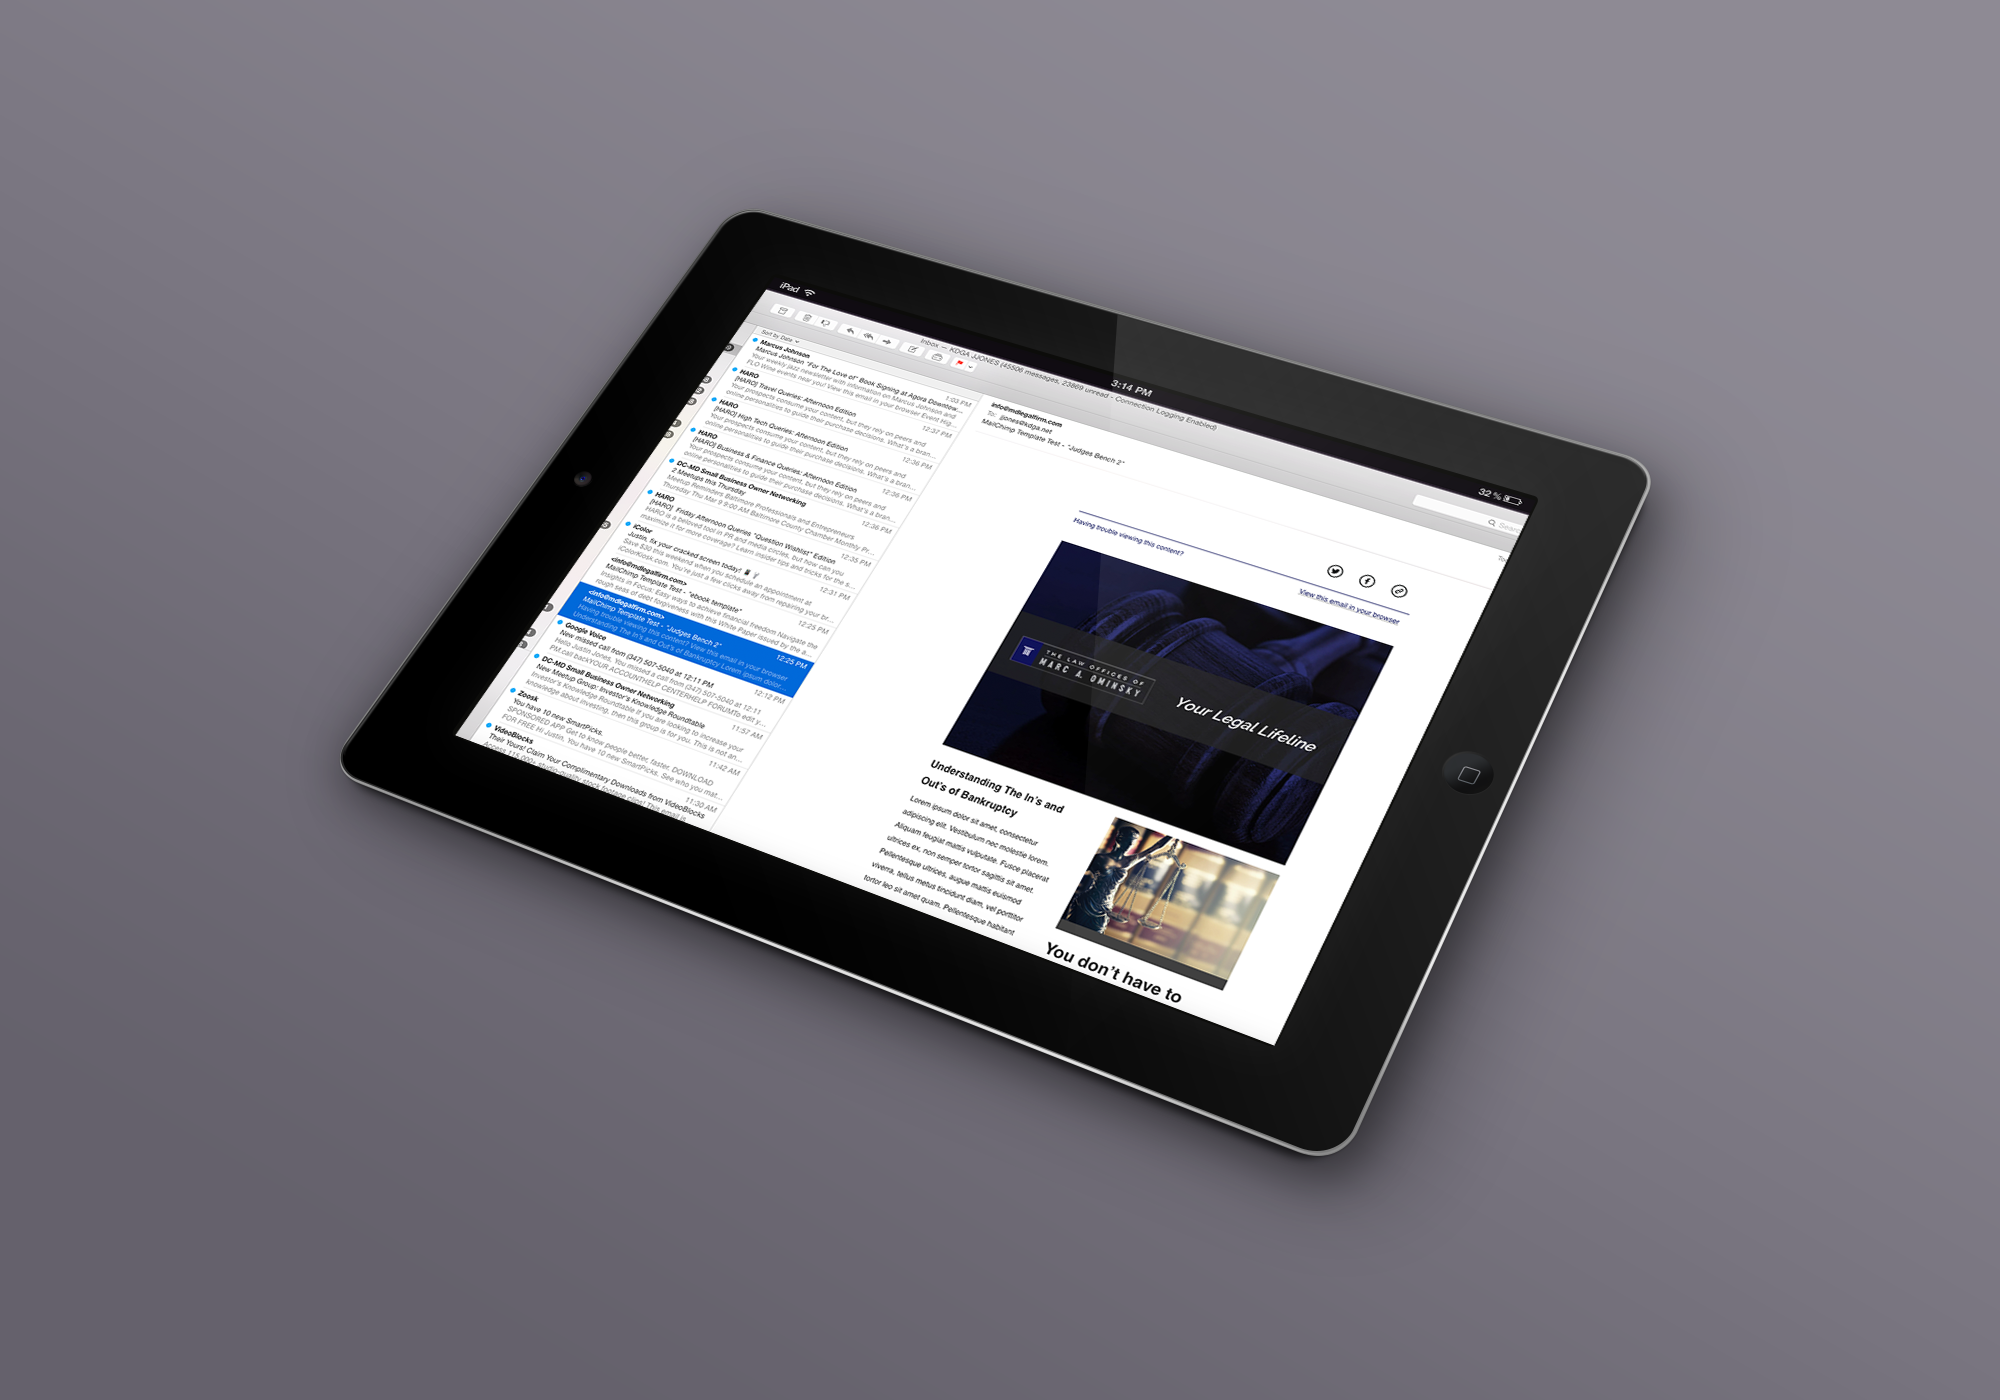 iPad2-Black-Perspective-View-Landscape-Mockup